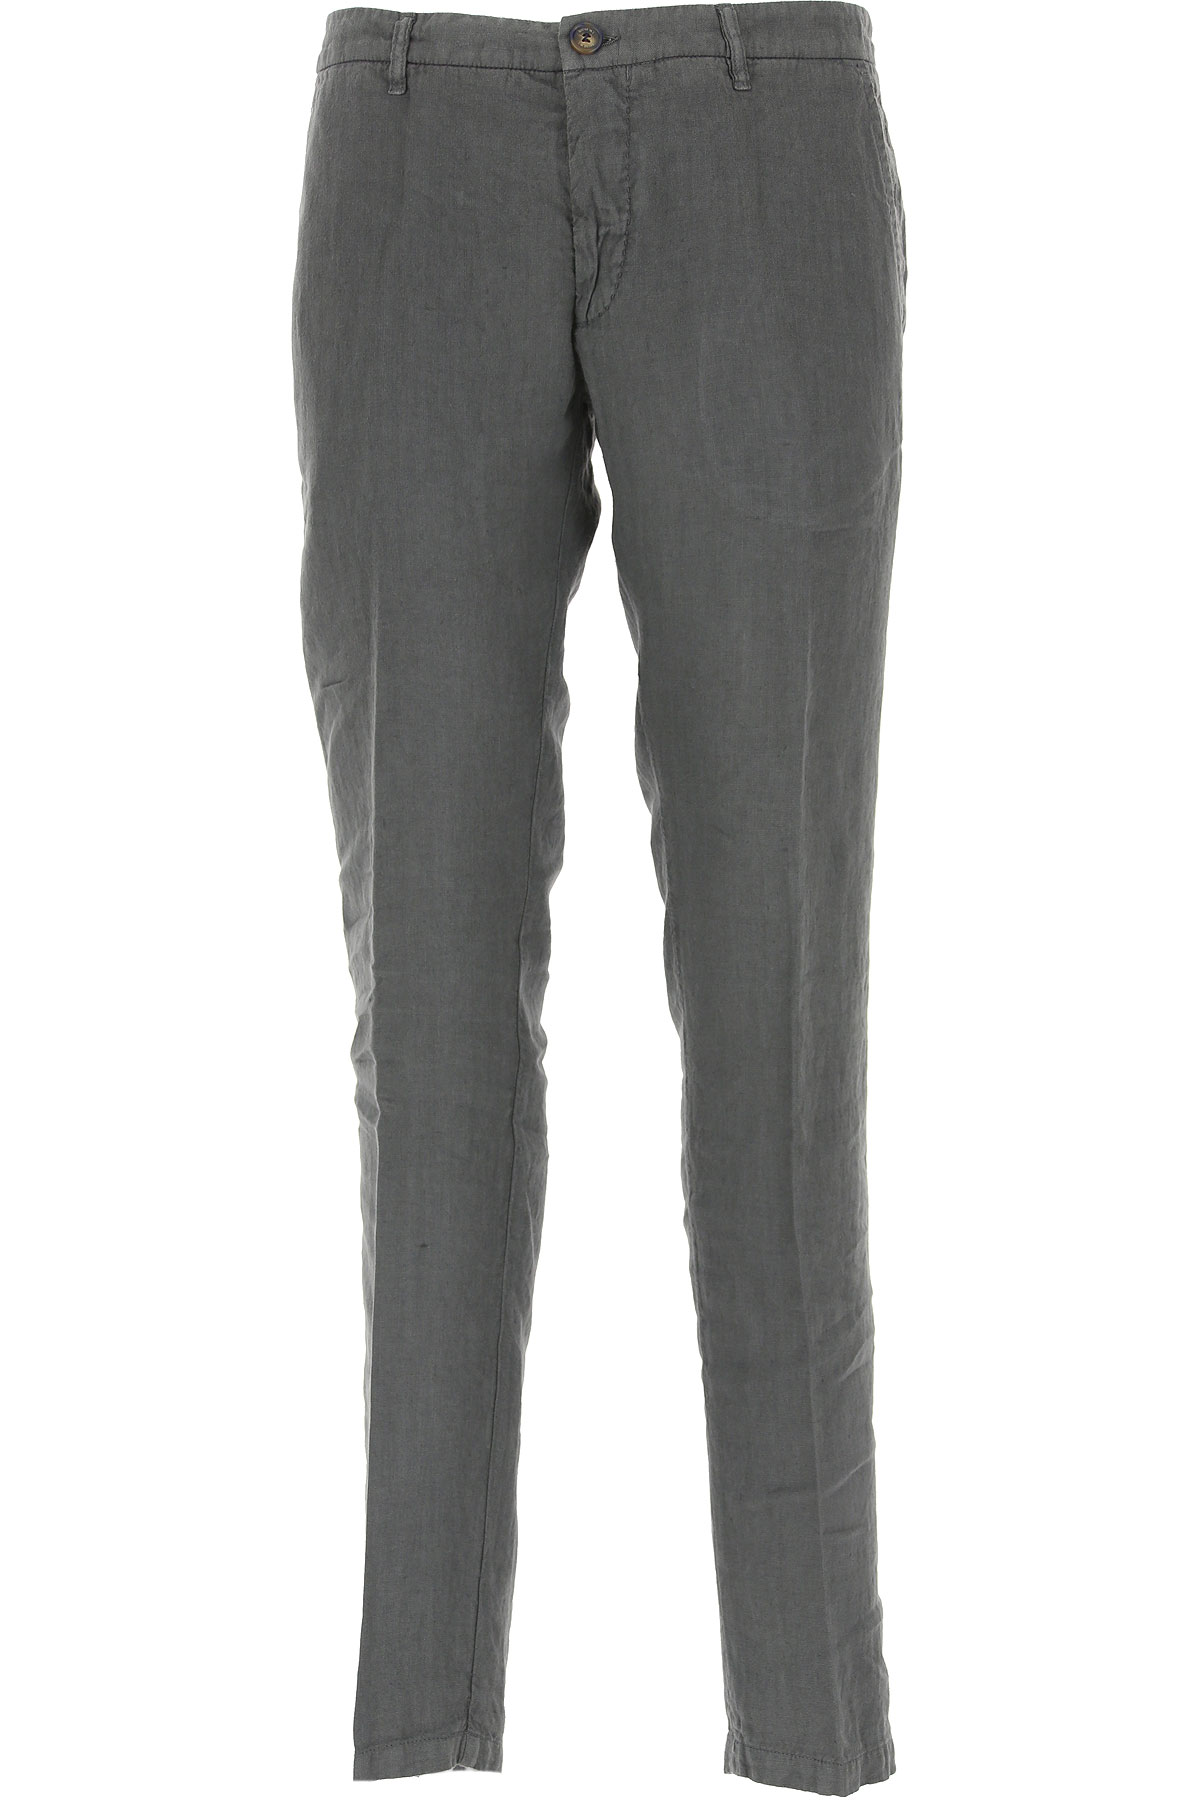 J.W. Brine Pants for Men, Asphalt Grey, linen, 2019, 30 32 34 38 40